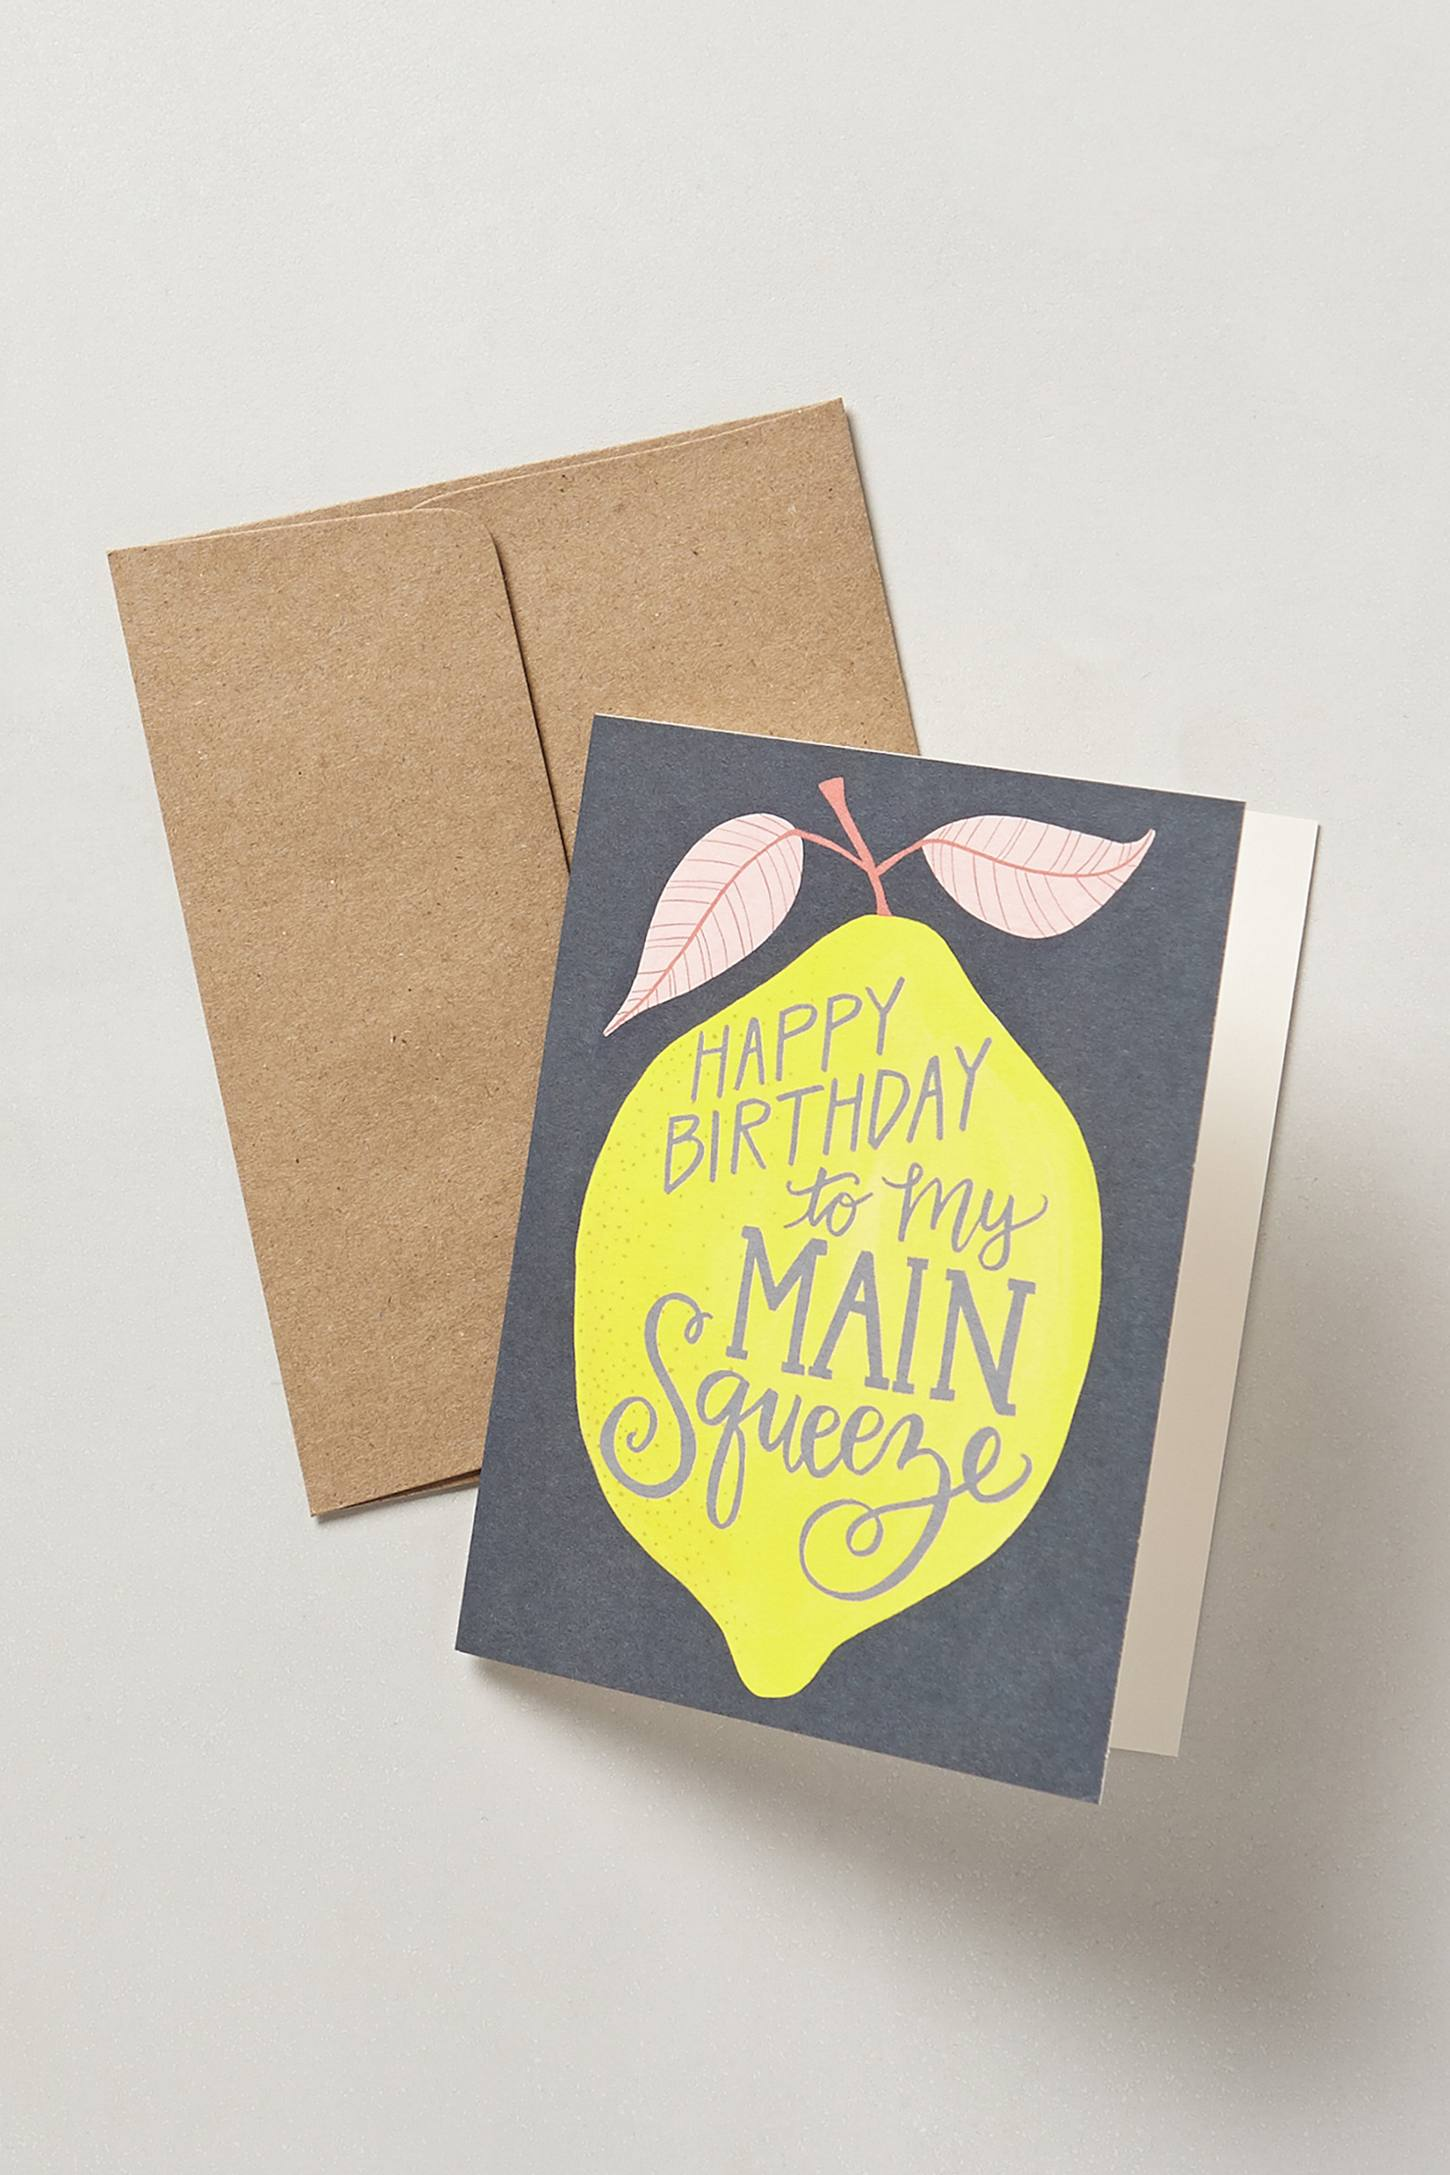 Slide View: 1: Main Squeeze Birthday Card